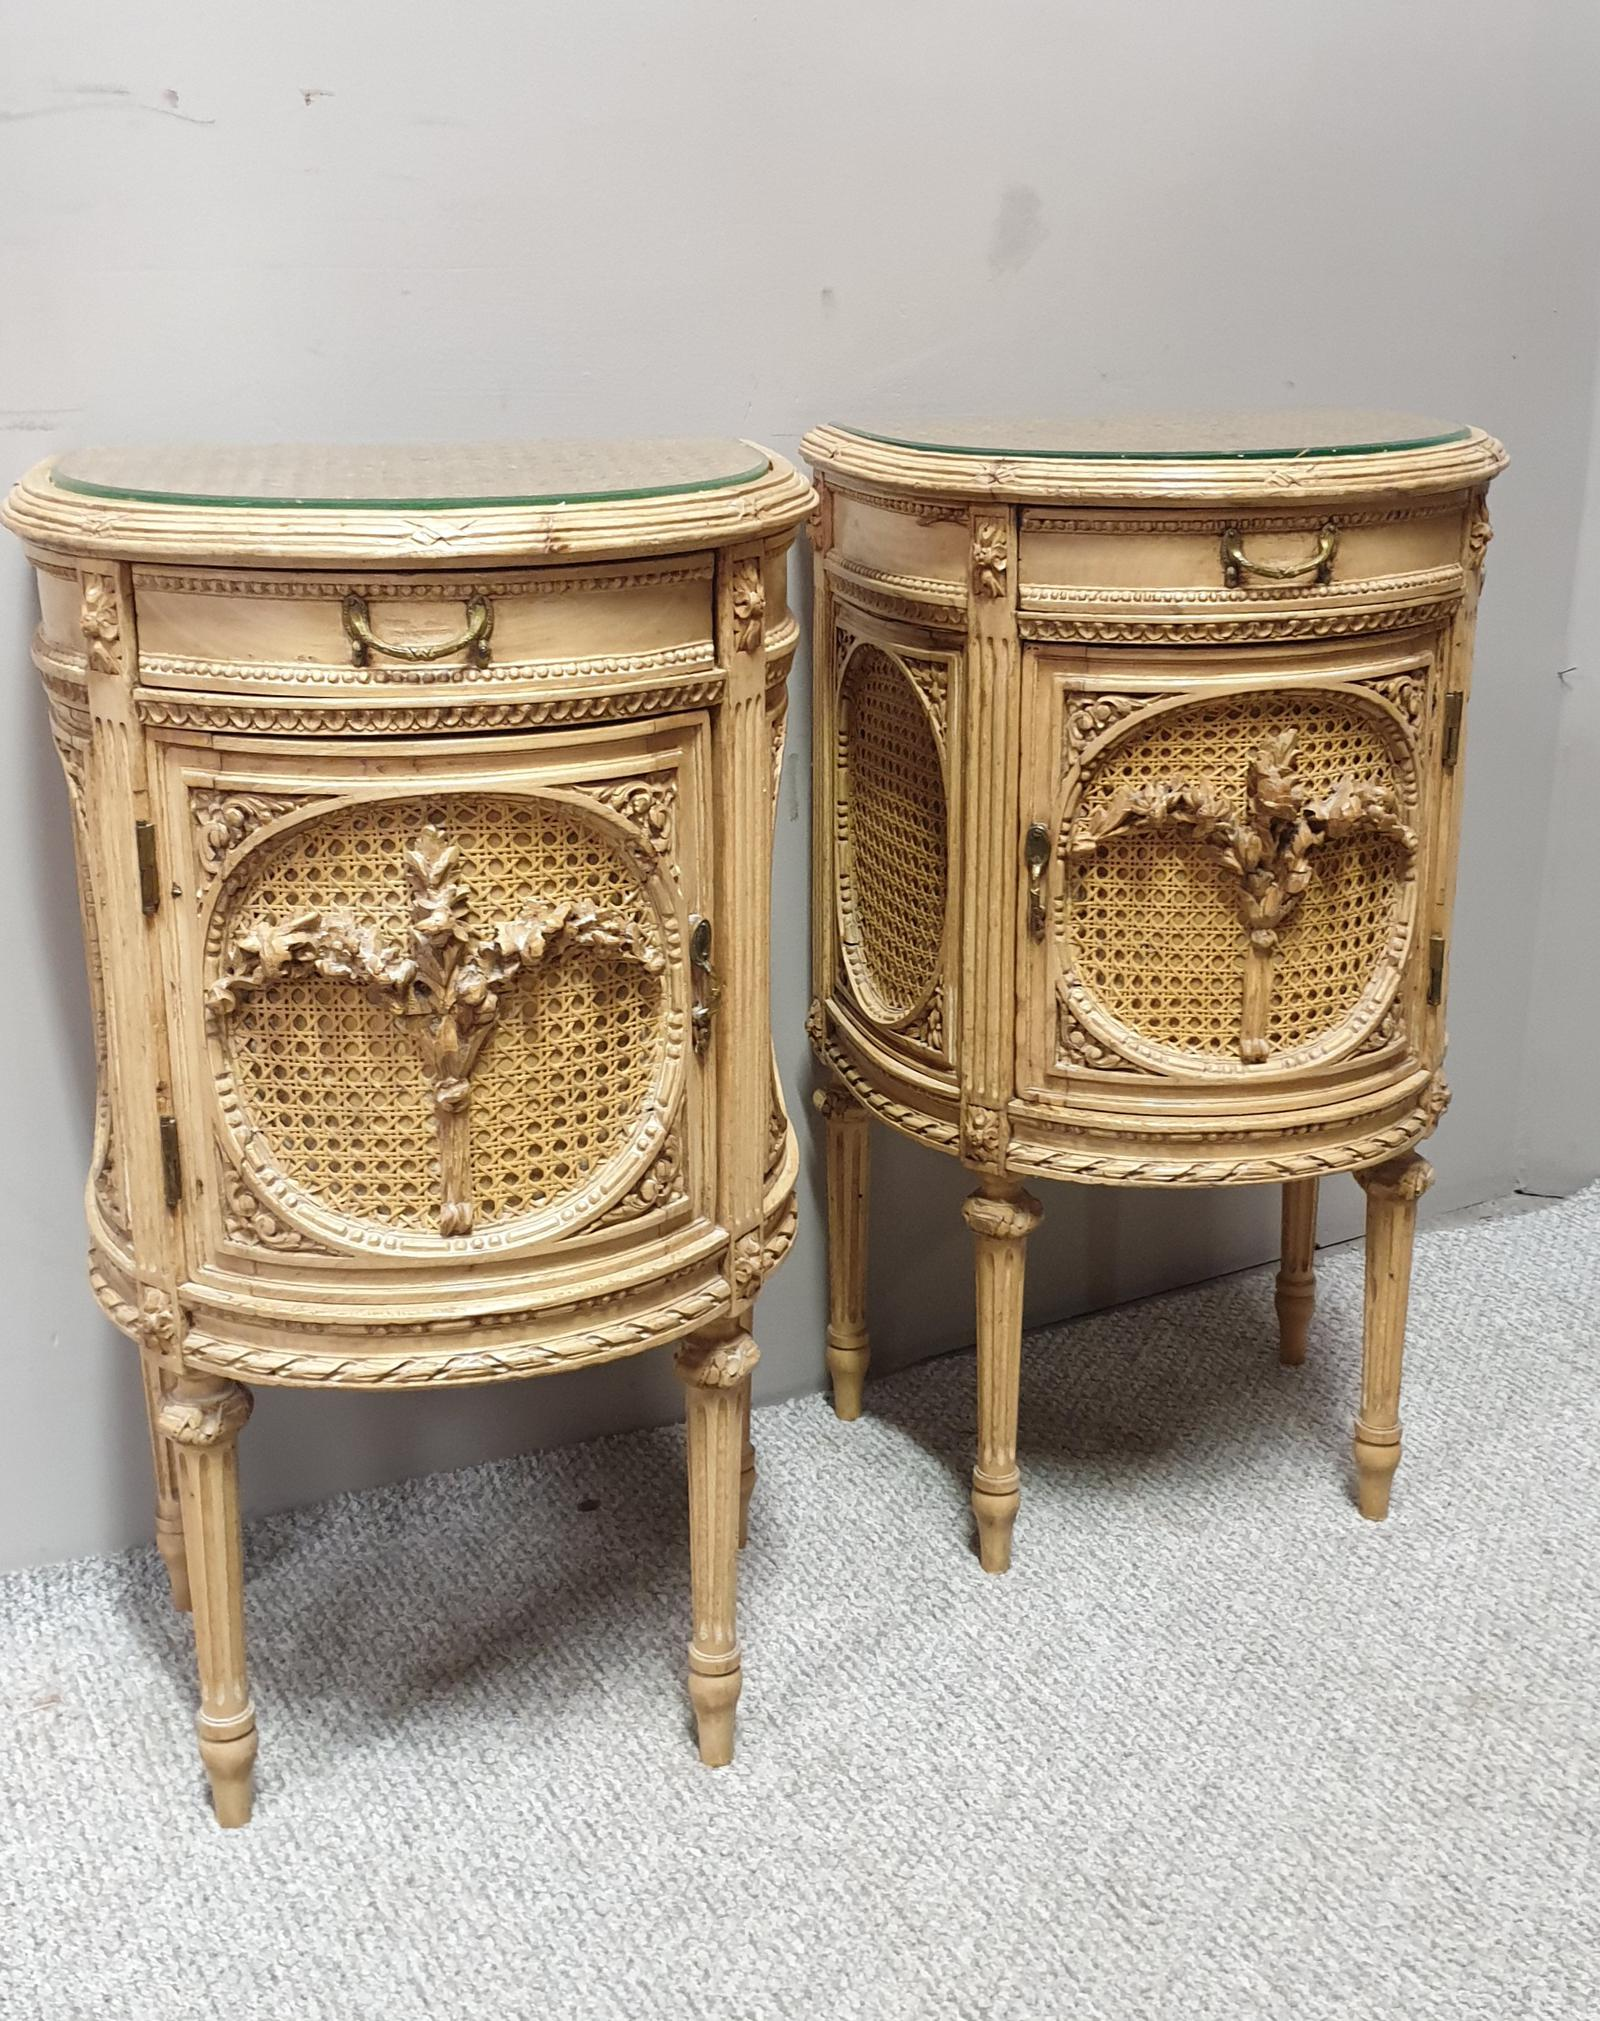 Fabulous French Bergere Bedside Cabinets (1 of 1)